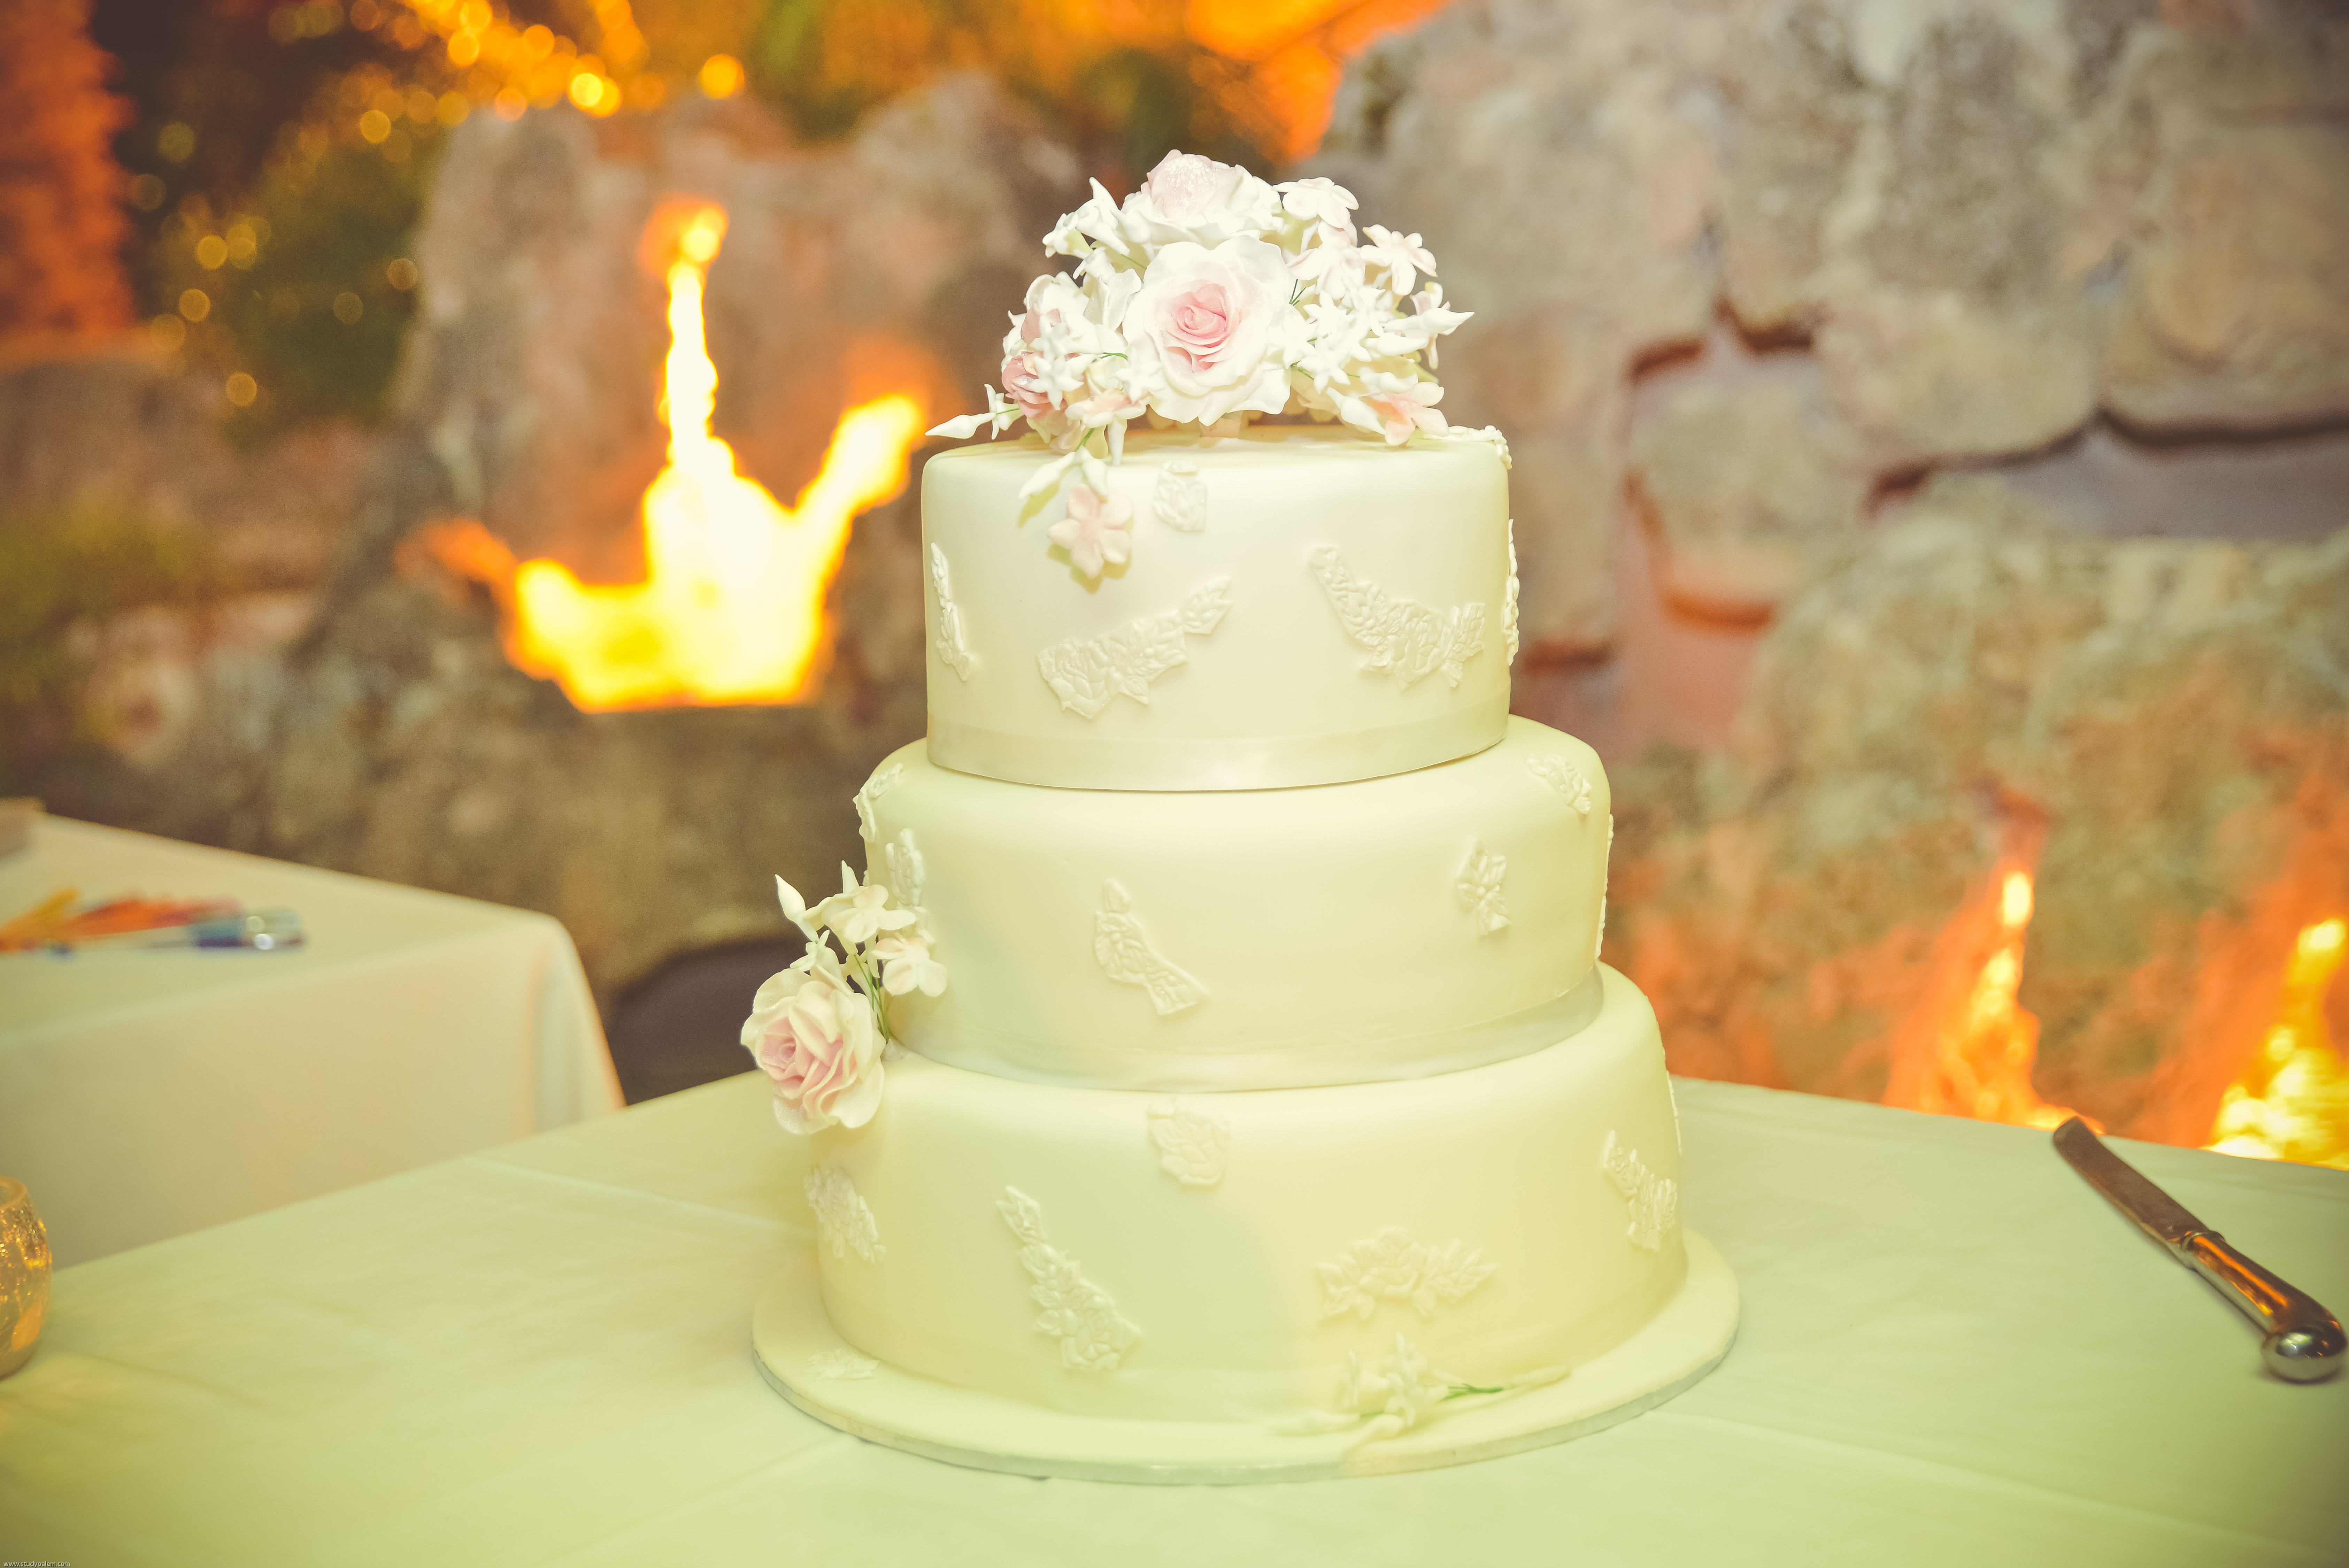 Wedding cakes in Northern Cyprus (26)